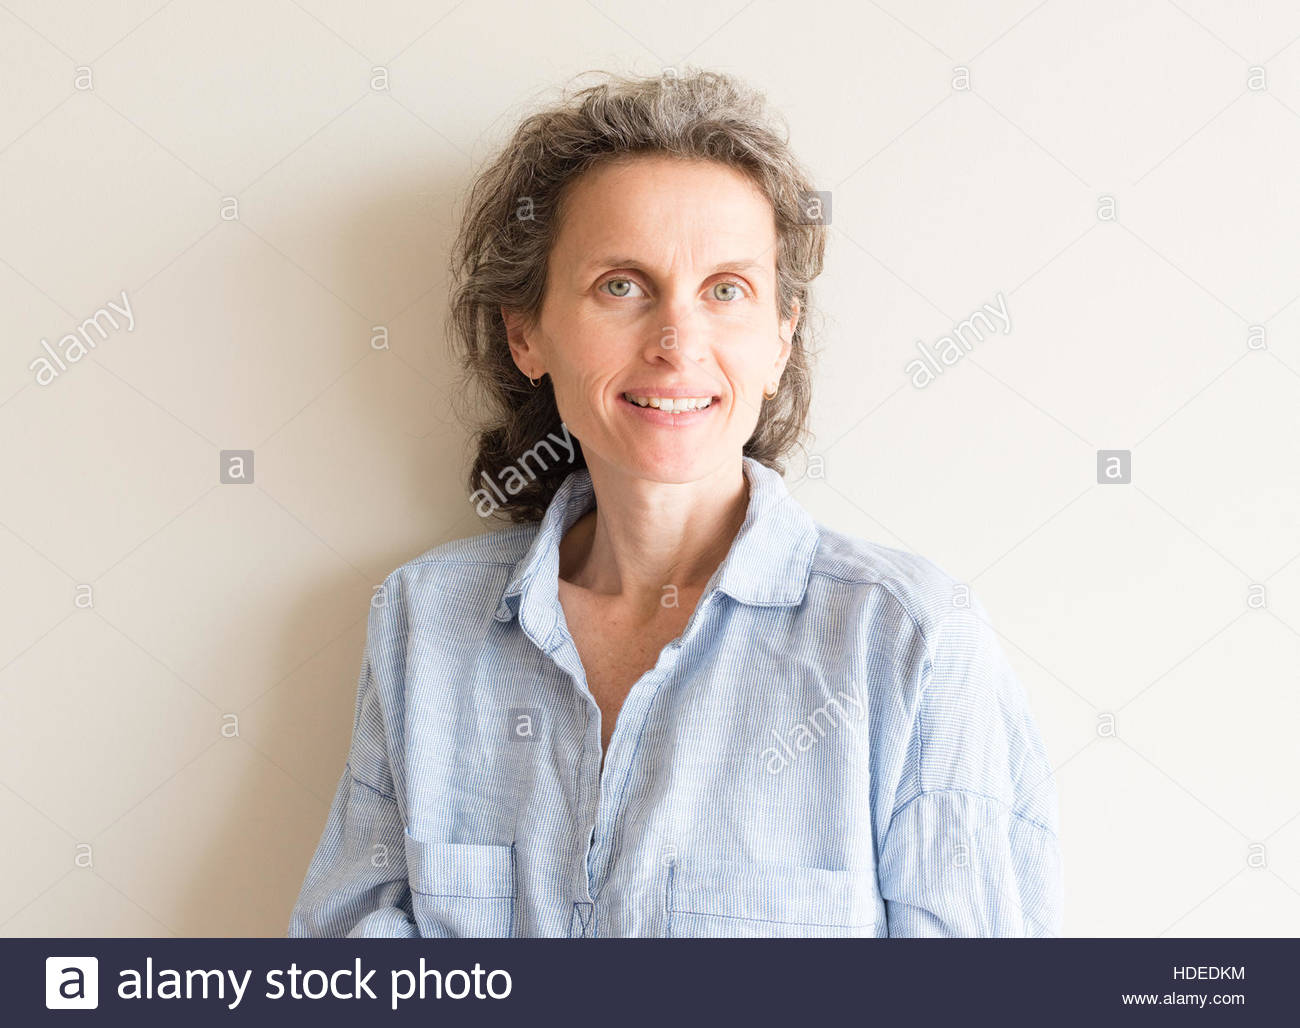 Natural looking middle aged woman with grey hair and blue shirt smiling - Stock Image